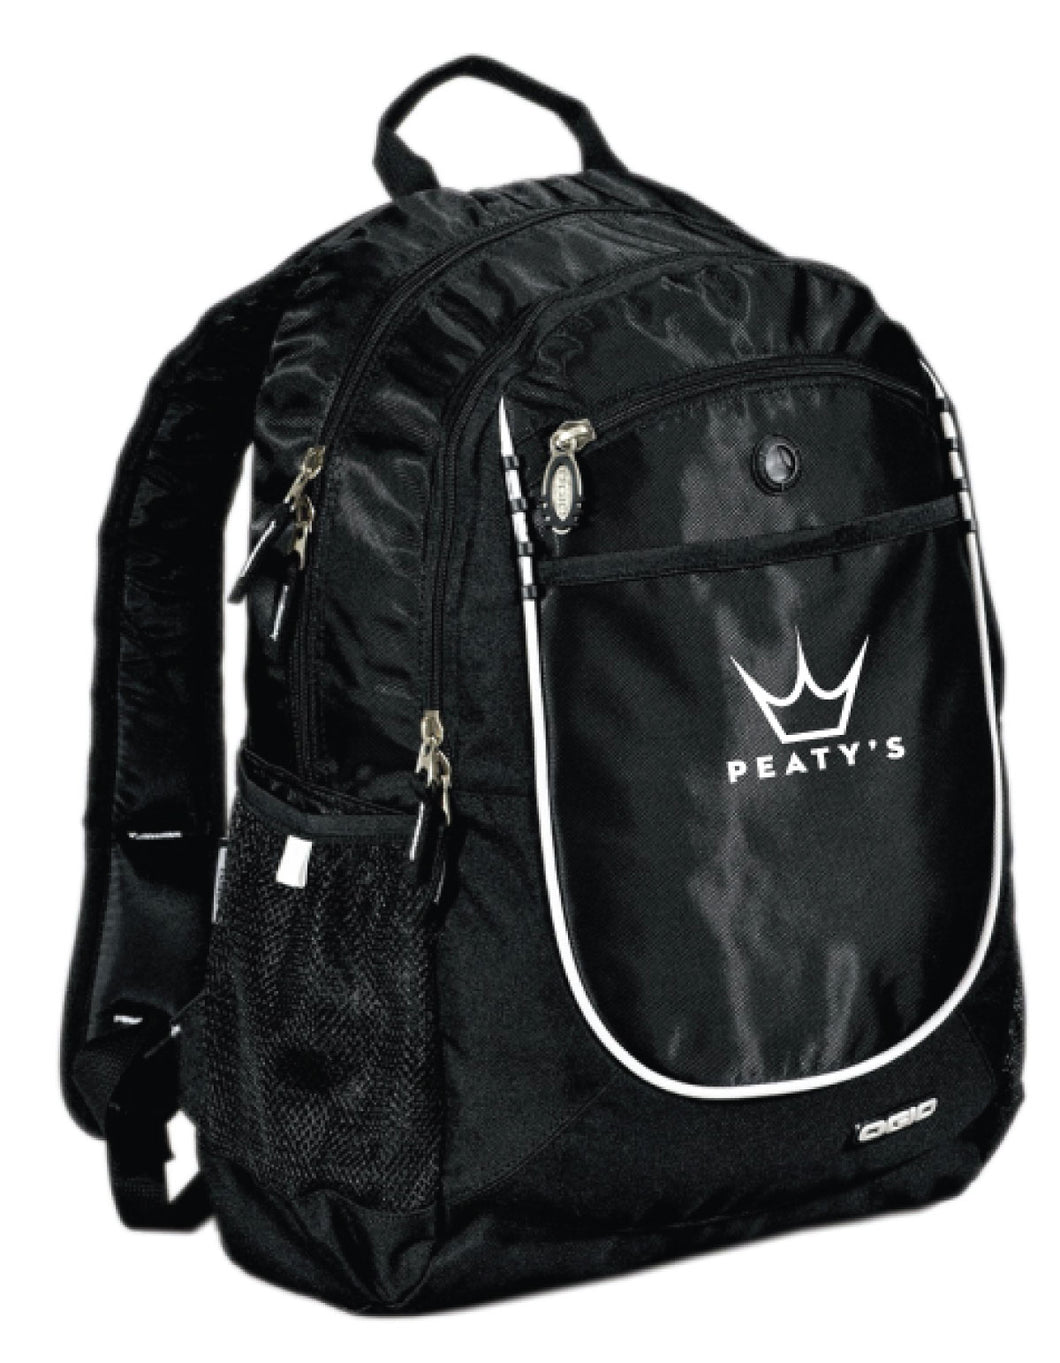 Peaty's OGIO Pro Carbon Backpack